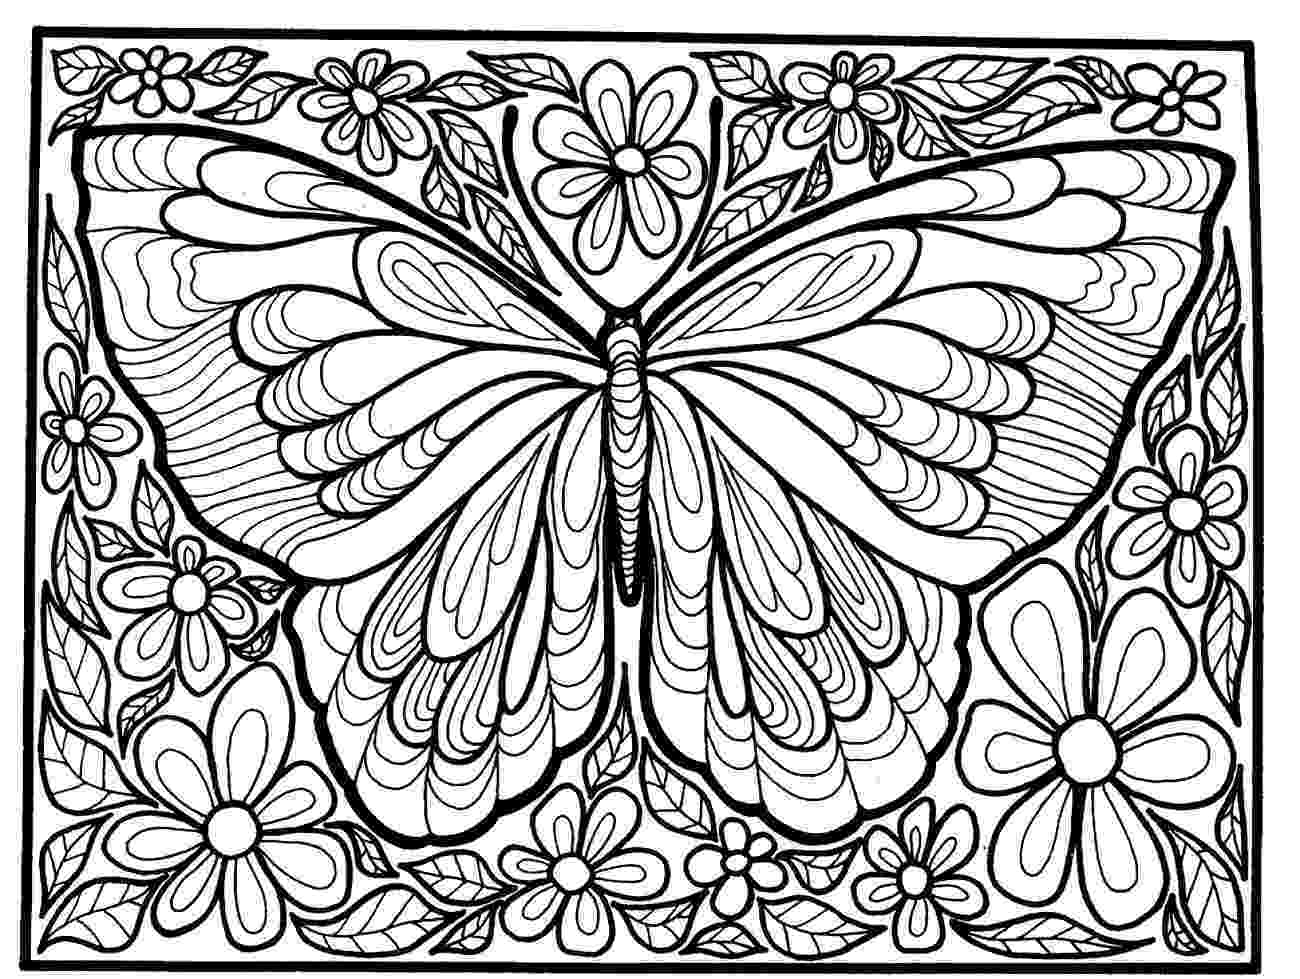 butterfly pictures to colour and print free printable butterfly coloring pages for kids pictures print to colour and butterfly